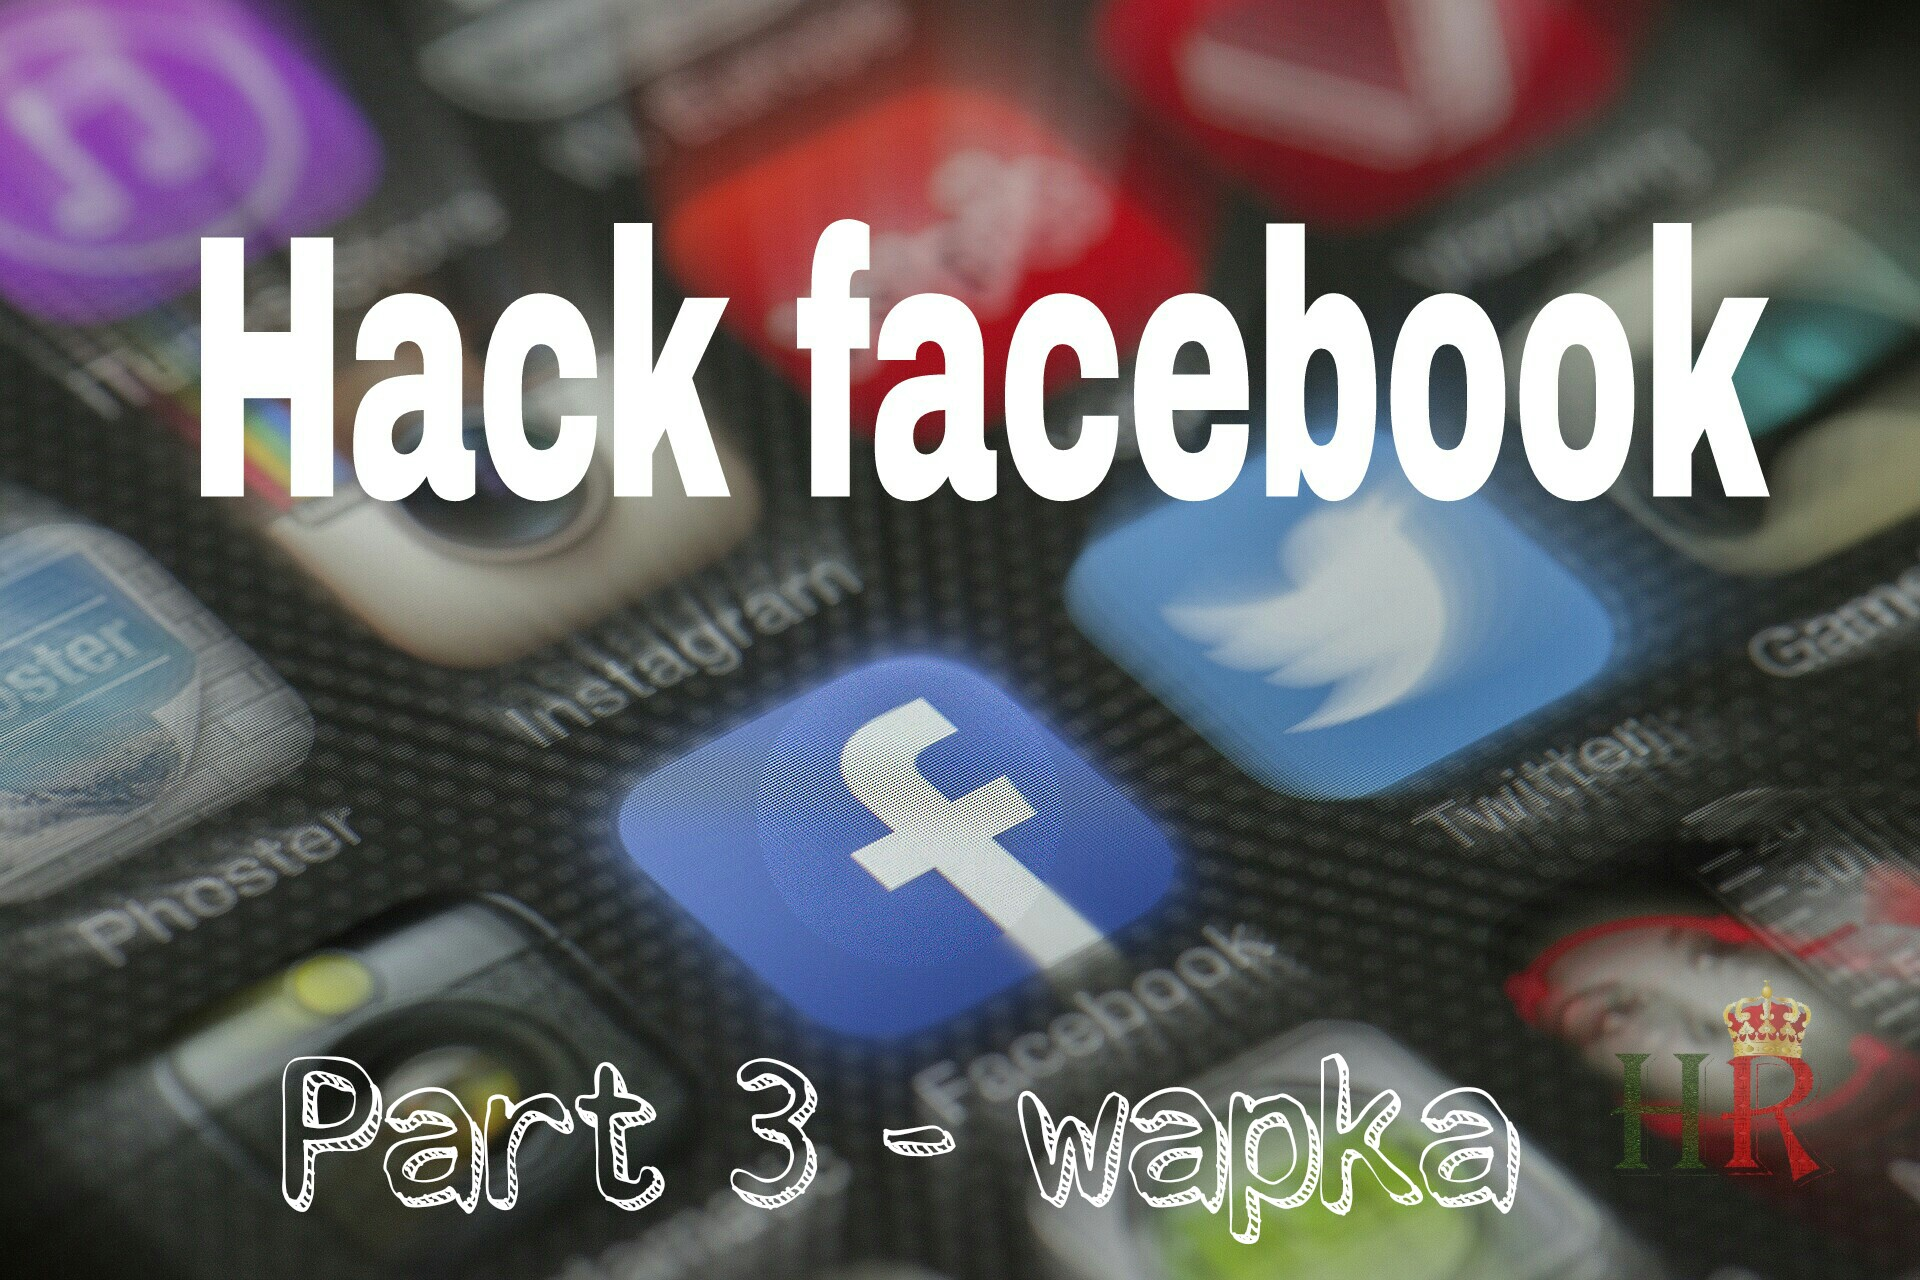 How To Hack Any Facebook Account using Wapka [Phishing]